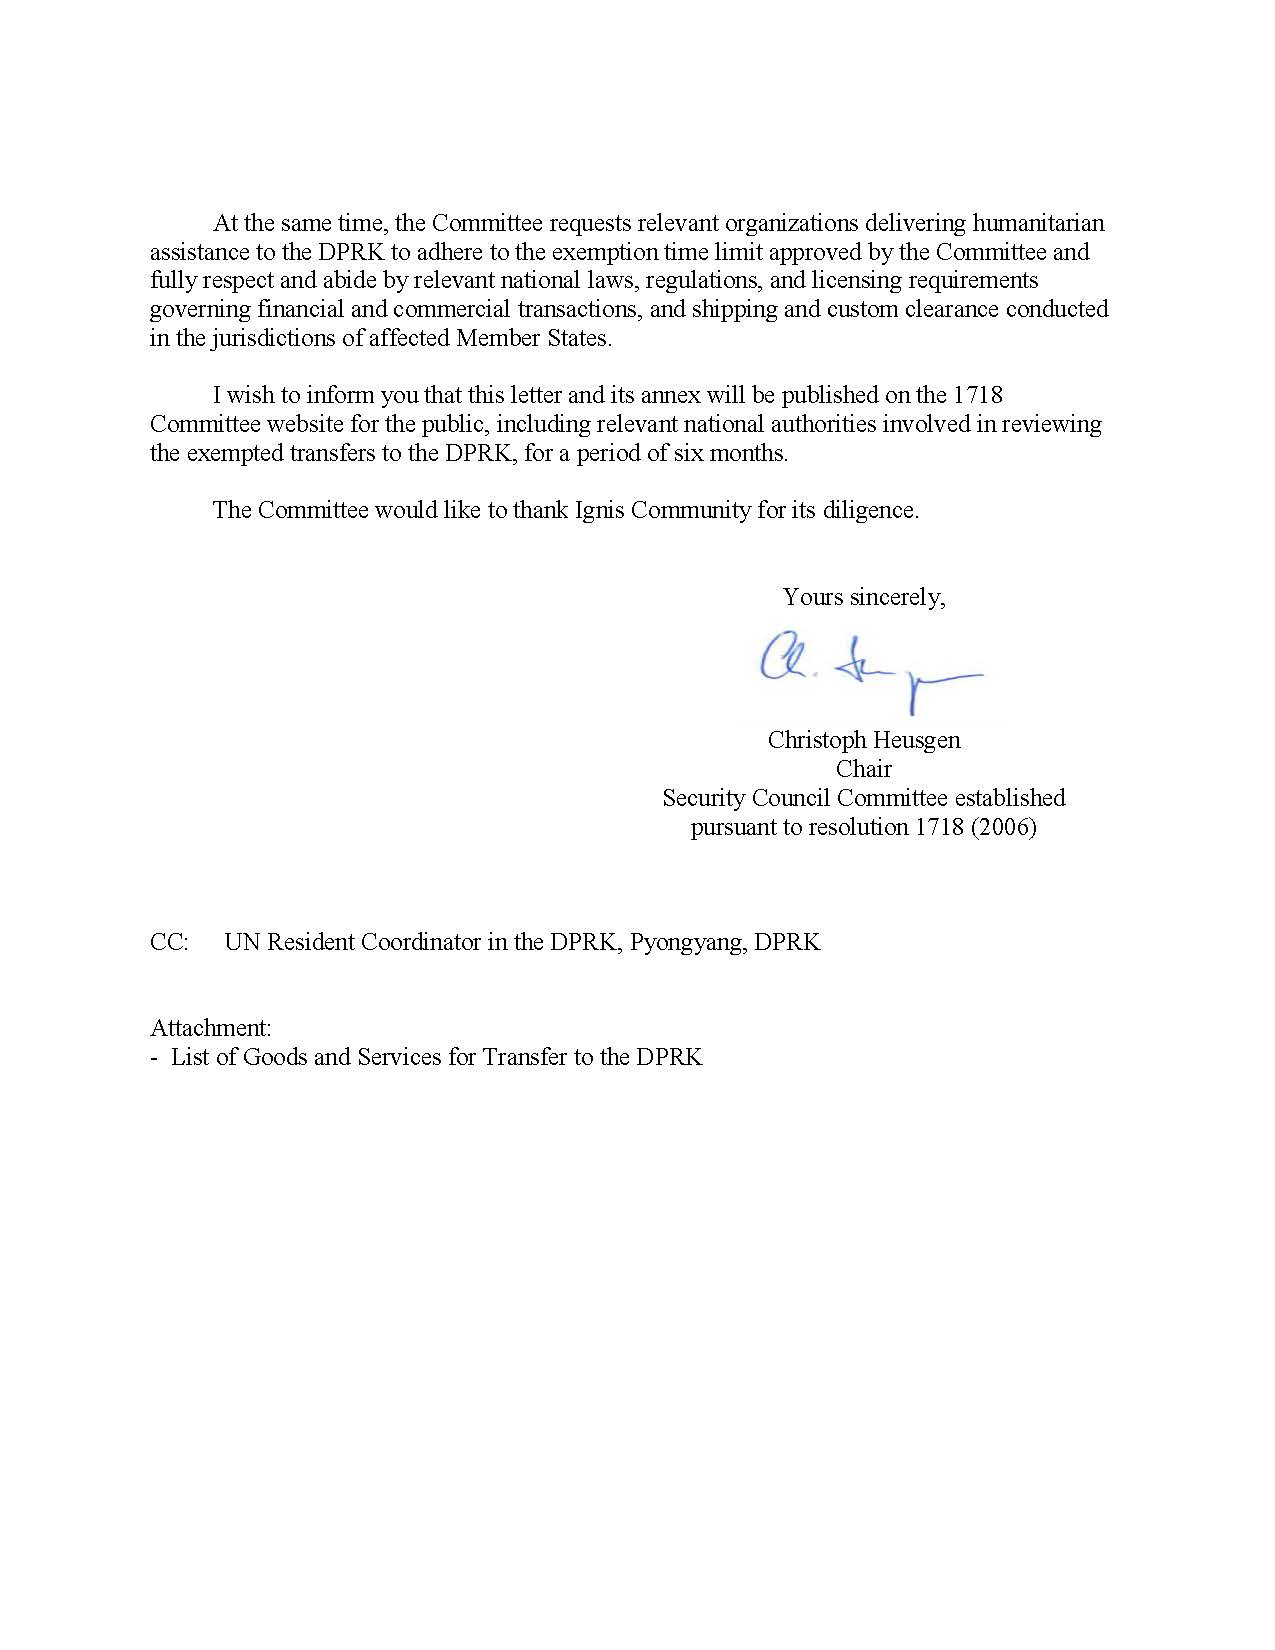 2019_OC227_1718_to_Ignis Community_reply_exemption_request_5Sep19_Page_02.jpg